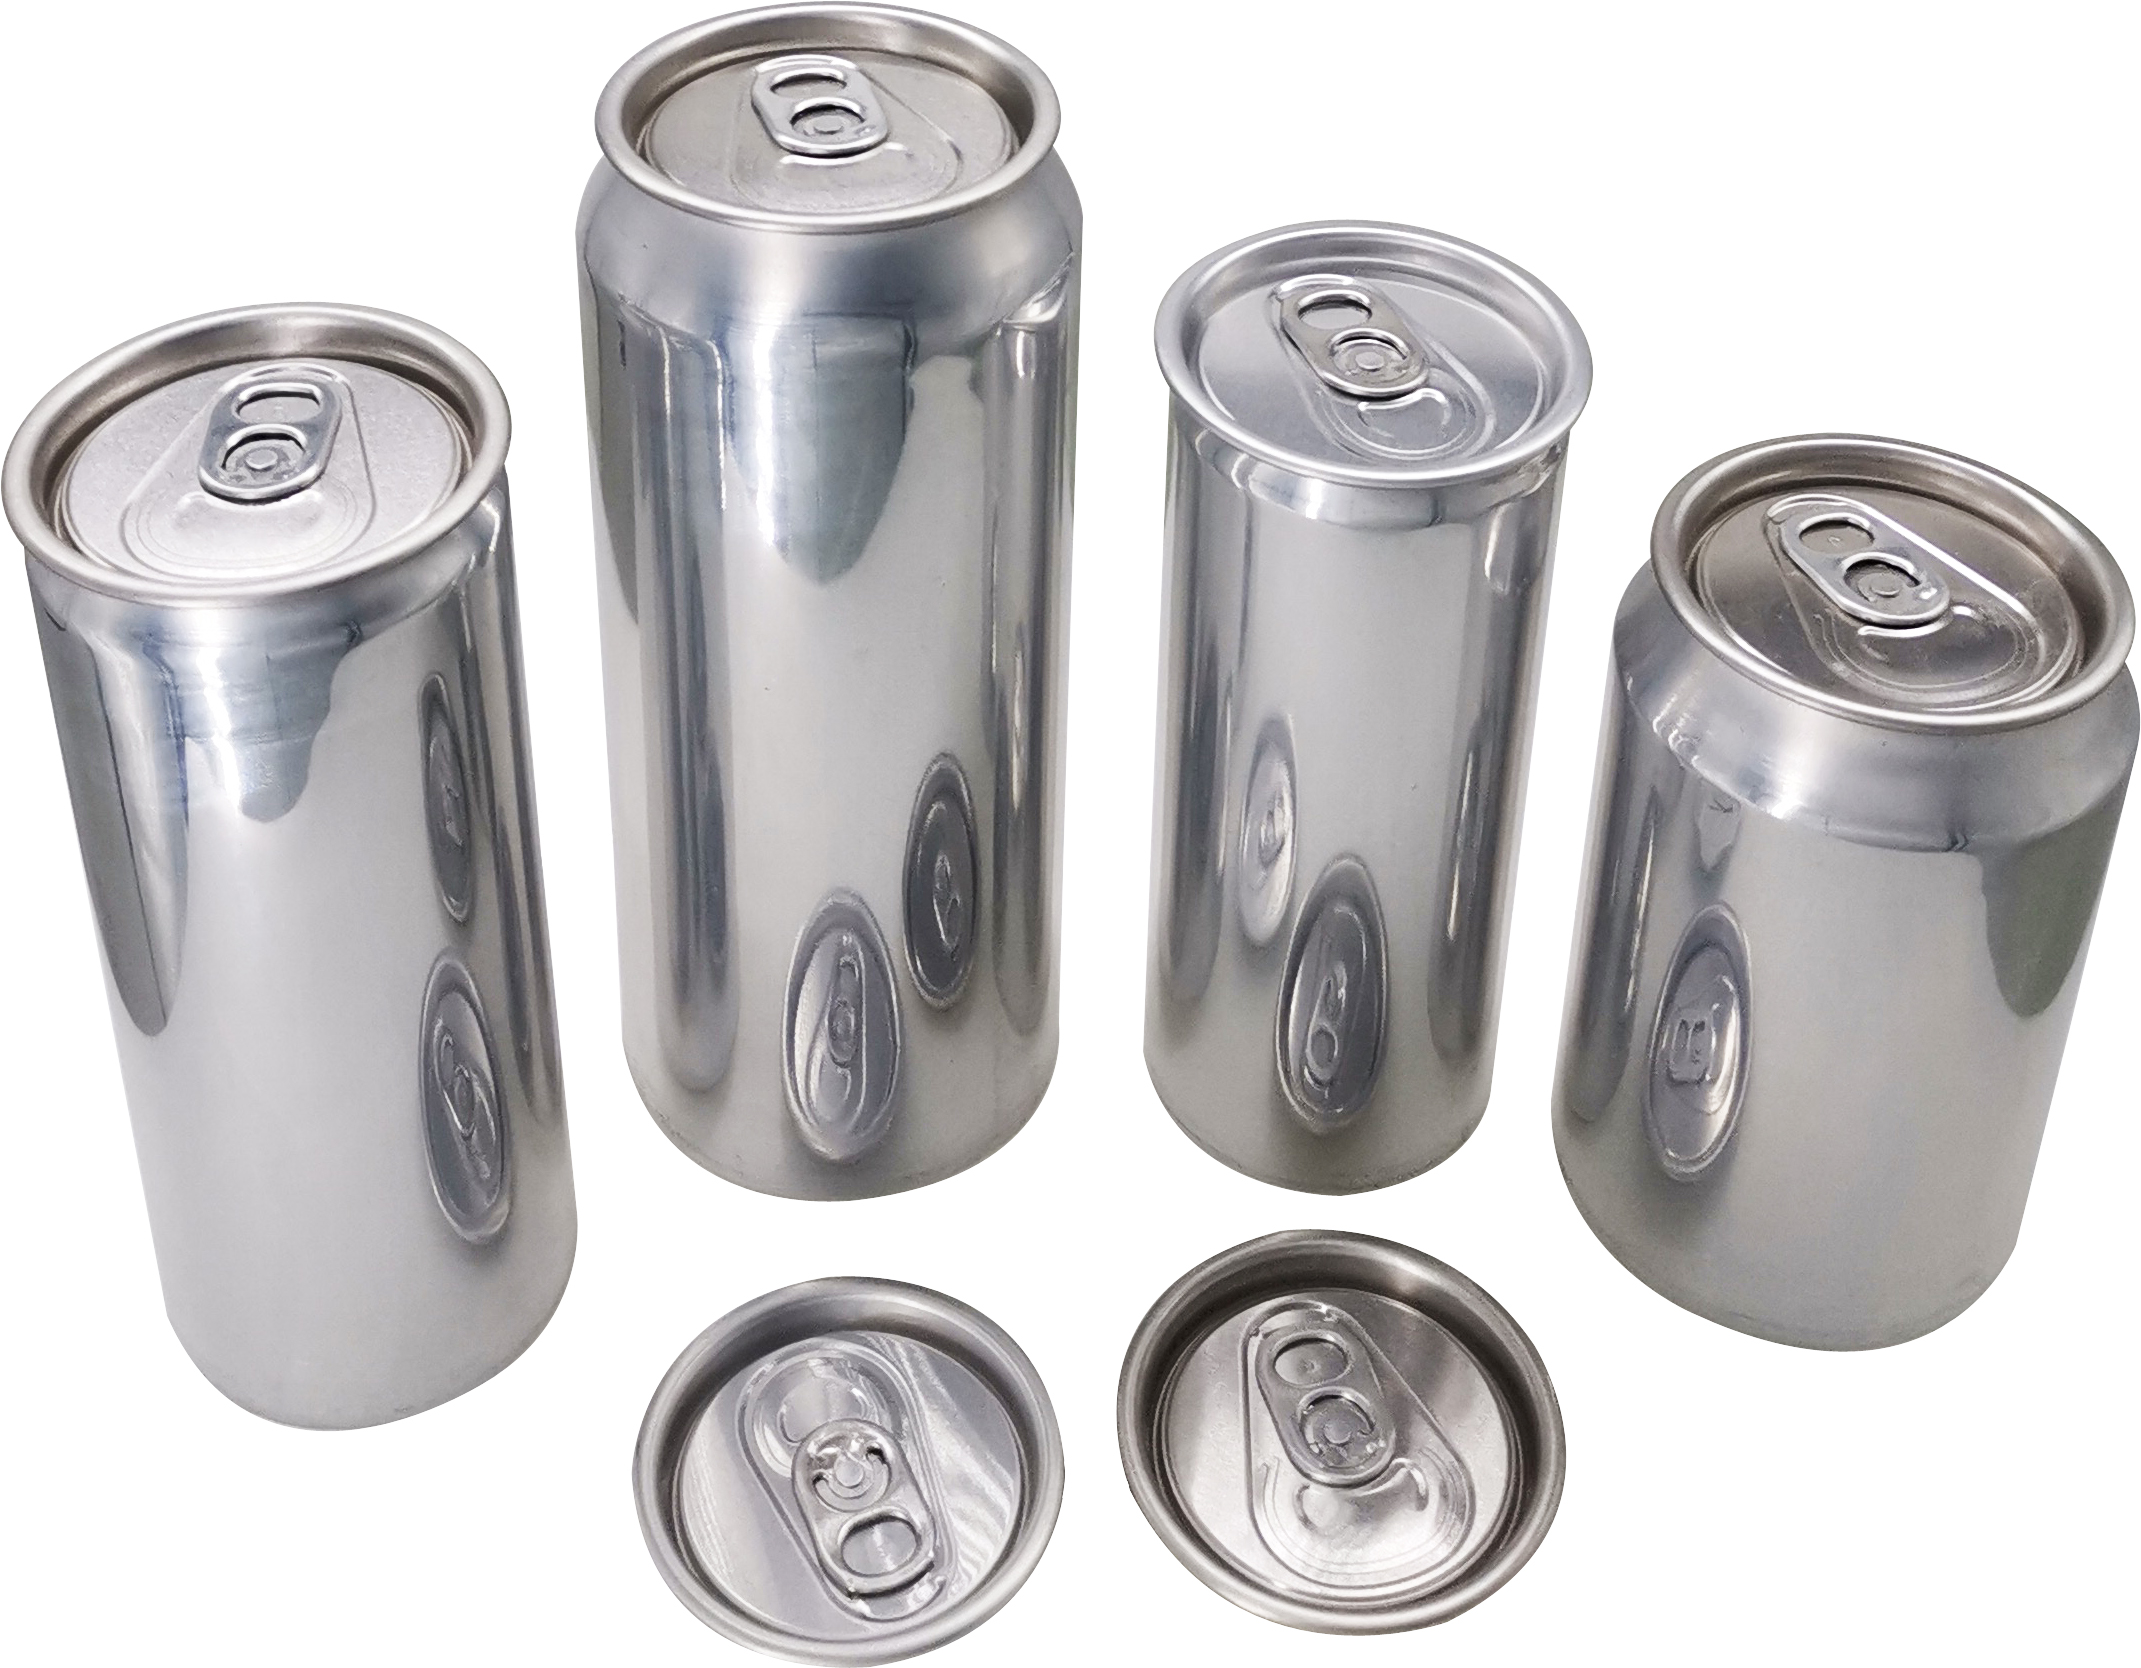 sealed metal containers